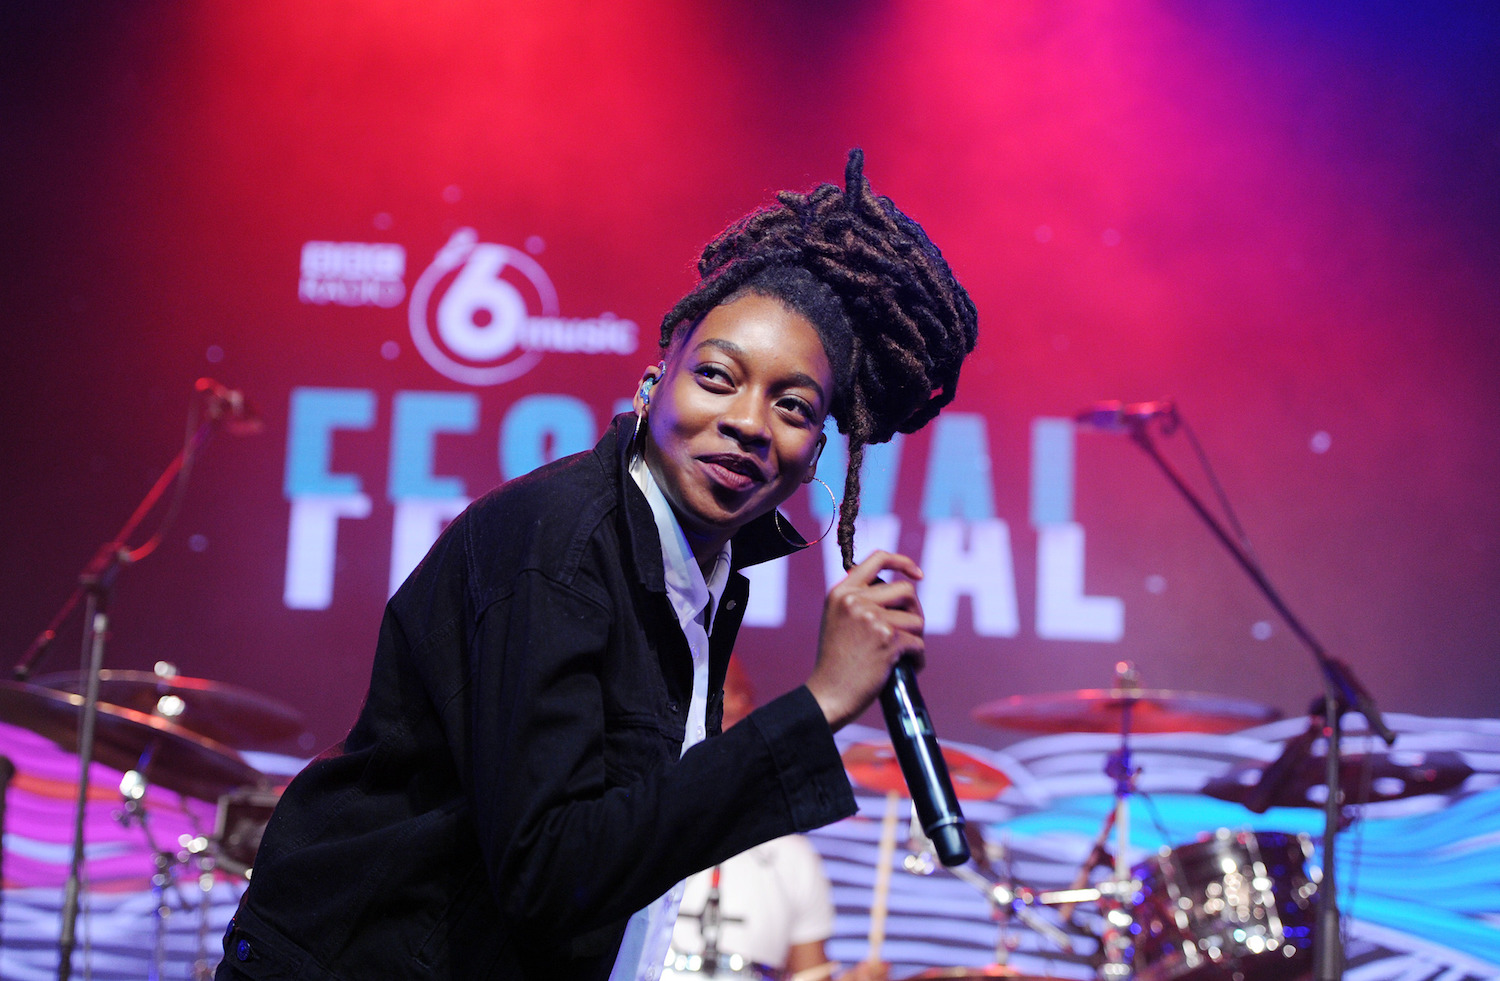 Live Review: The 6 Music Festival - Day Two at Mountford Hall, Liverpool, 30/03/2019